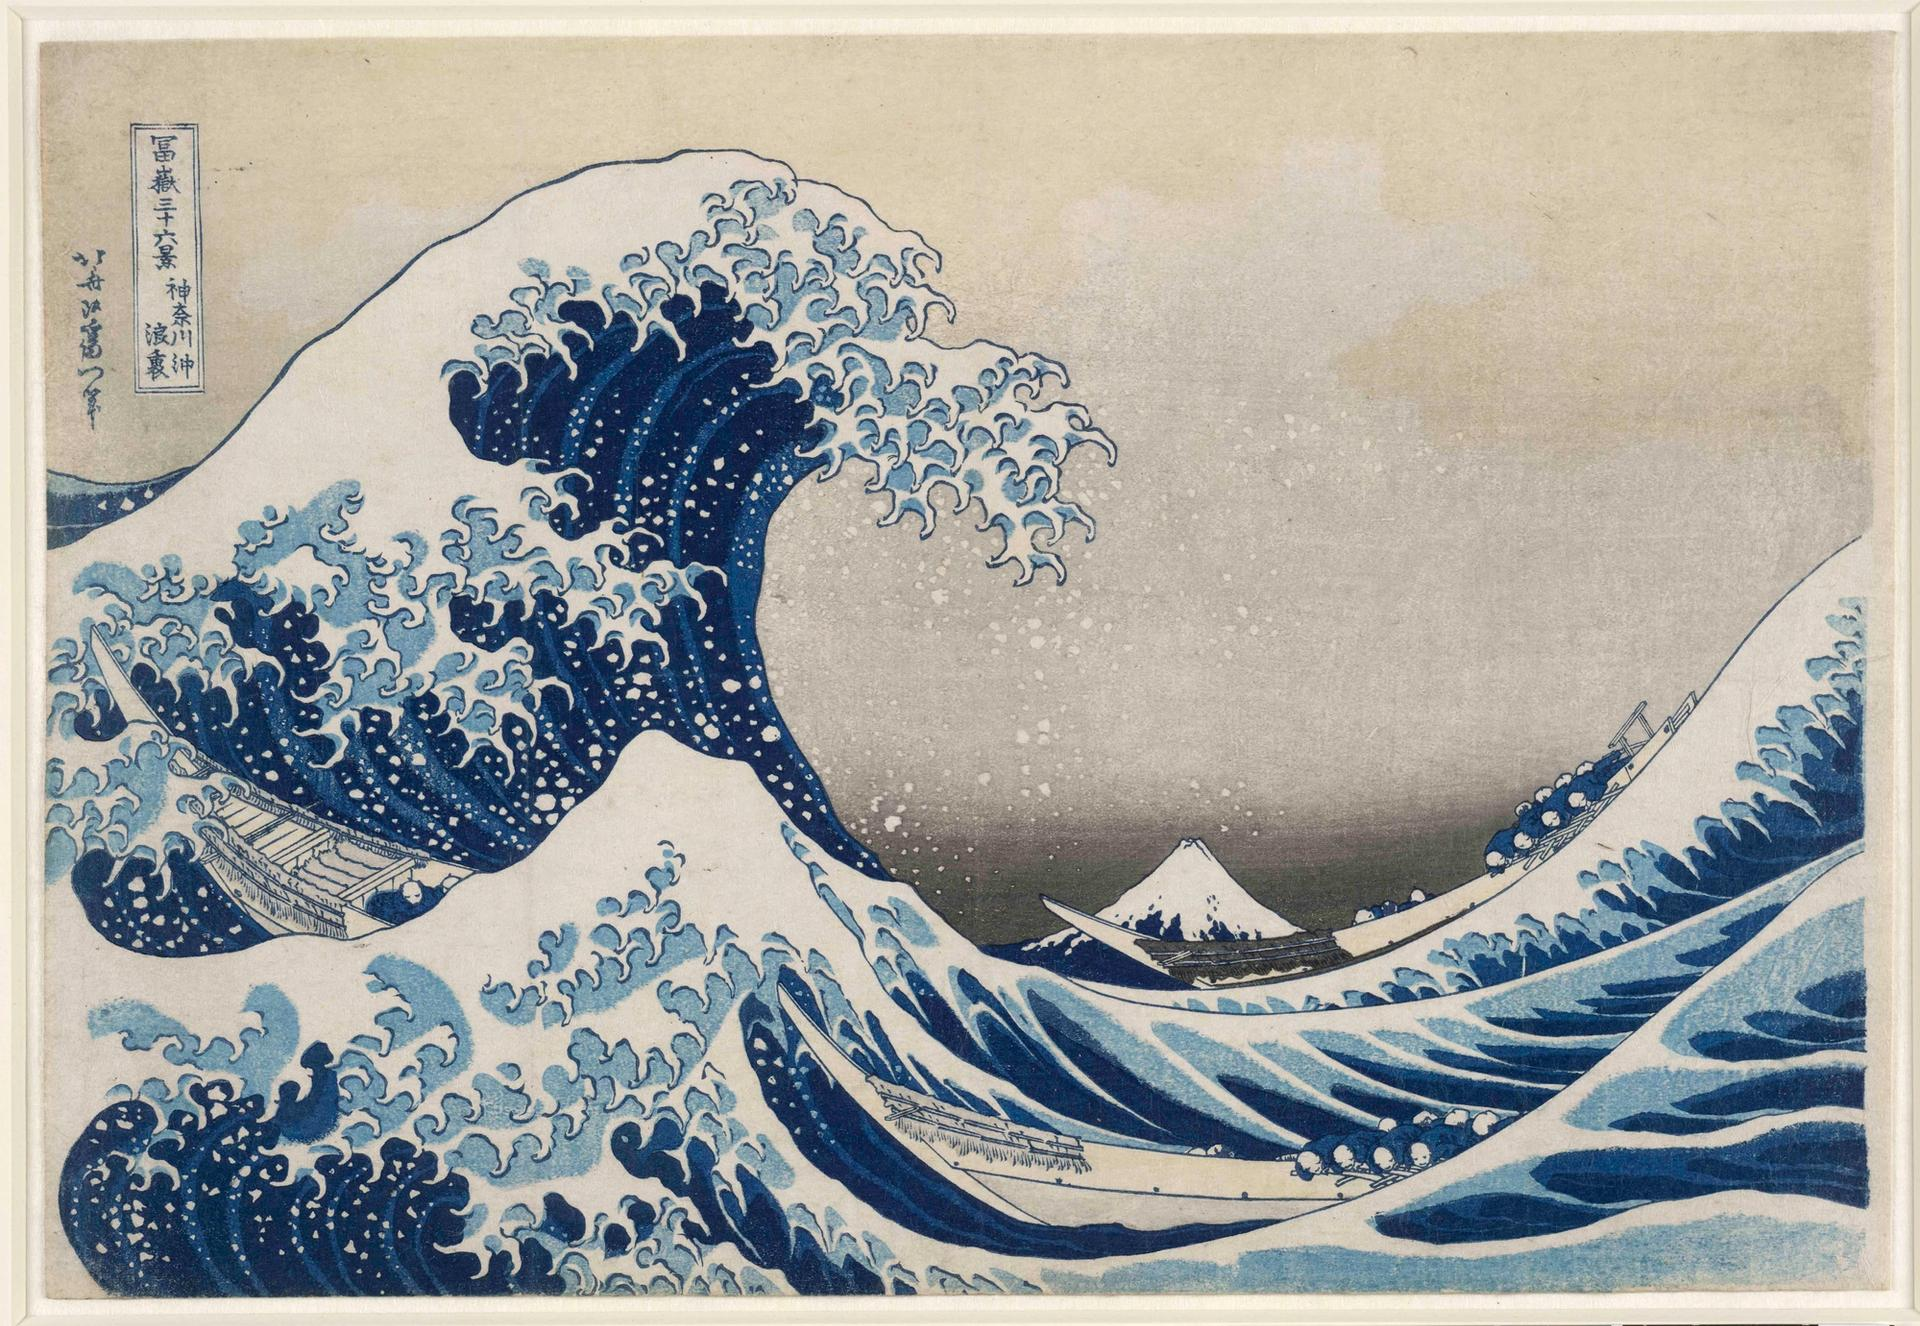 Under the Wave off Kanagawa (The Great Wave, 1831) by Katsushika Hokusai © 2021, The Trustees of the British Museum